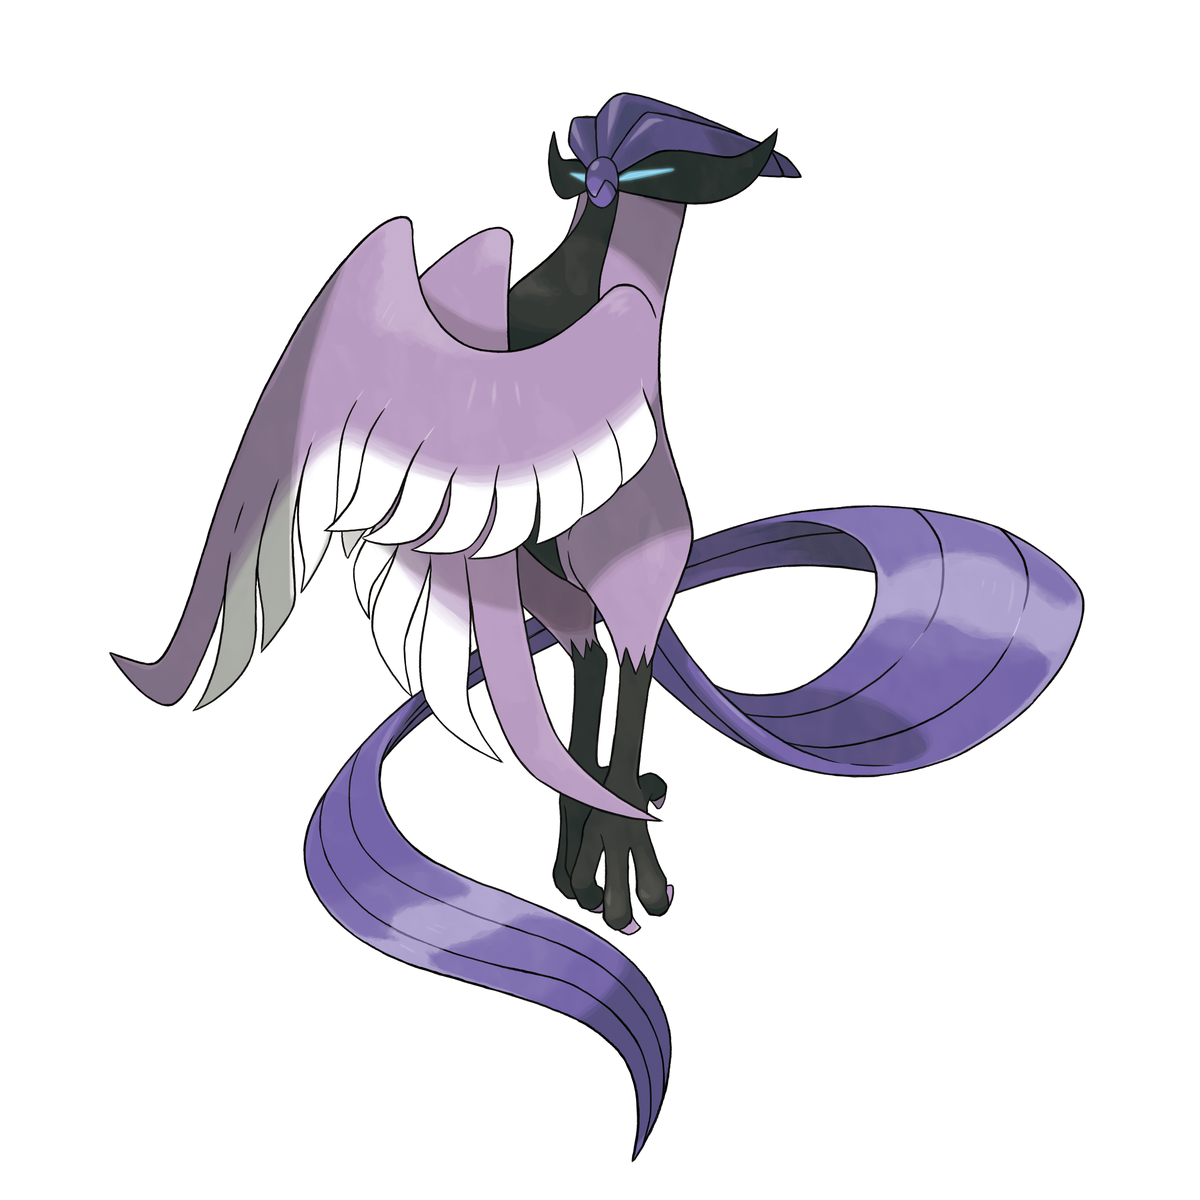 A purple bird with a black mask-like feature around its eyes